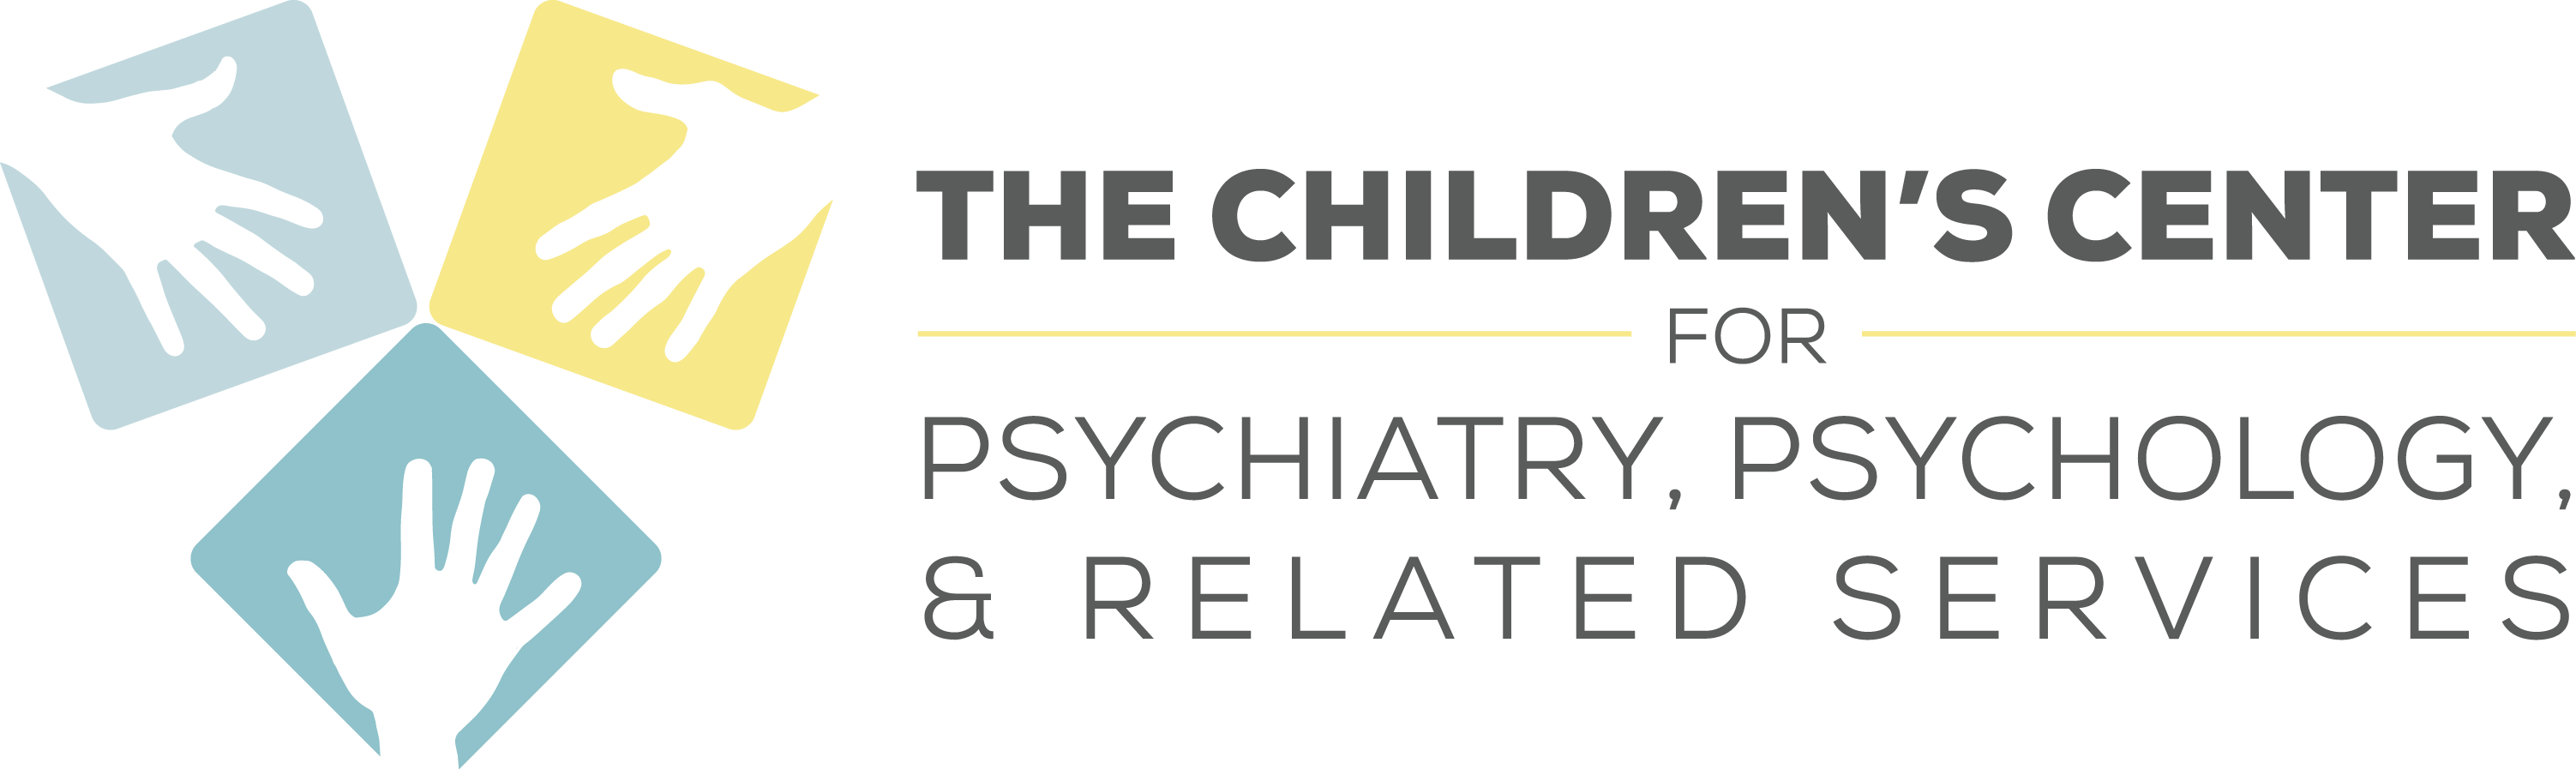 The Children's Center for Psychiatry, Psychology, & Related Services